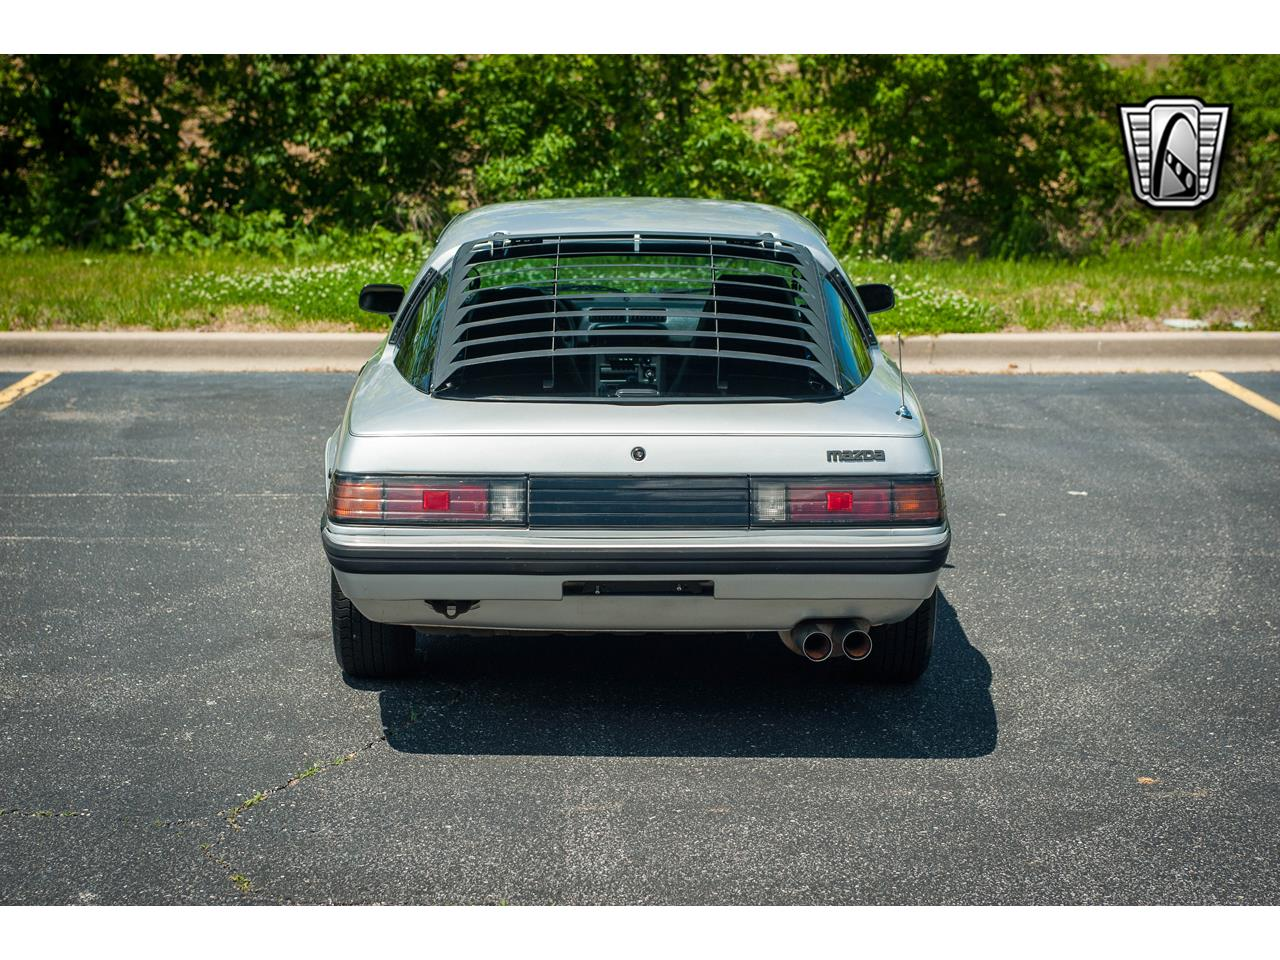 Large Picture of '82 RX-7 located in Illinois - $14,500.00 Offered by Gateway Classic Cars - St. Louis - QB9V